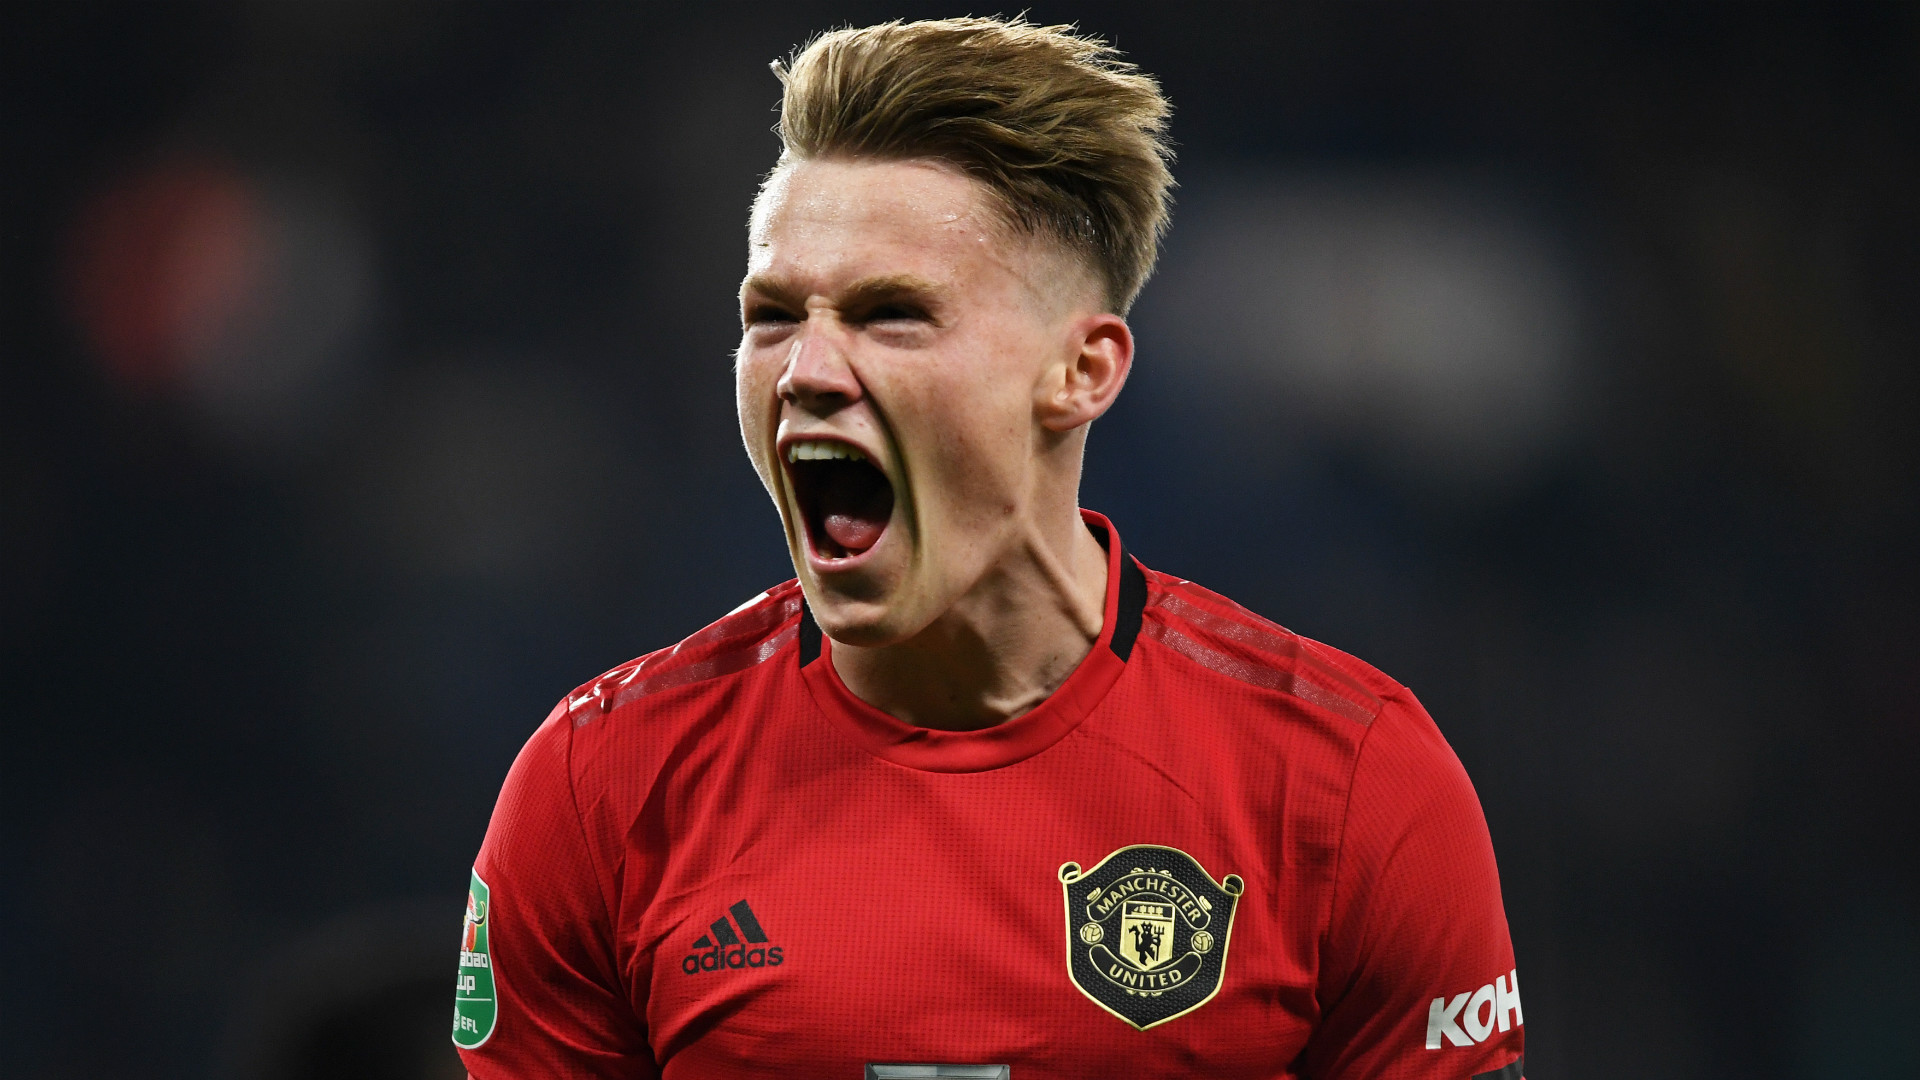 'We could have three trophies this season' – McTominay setting lofty targets at Man Utd